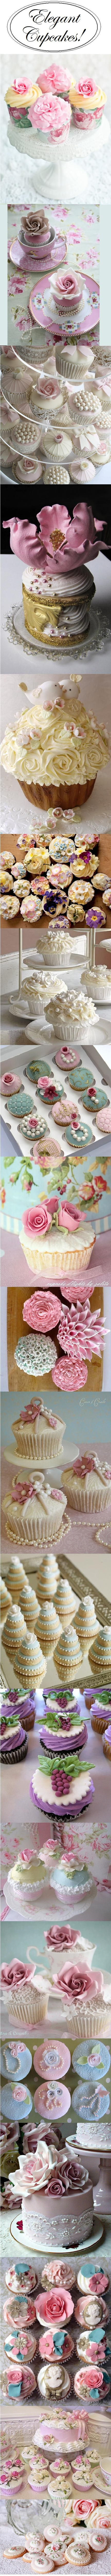 It takes 2-3 clicks to see the cupcakes full size